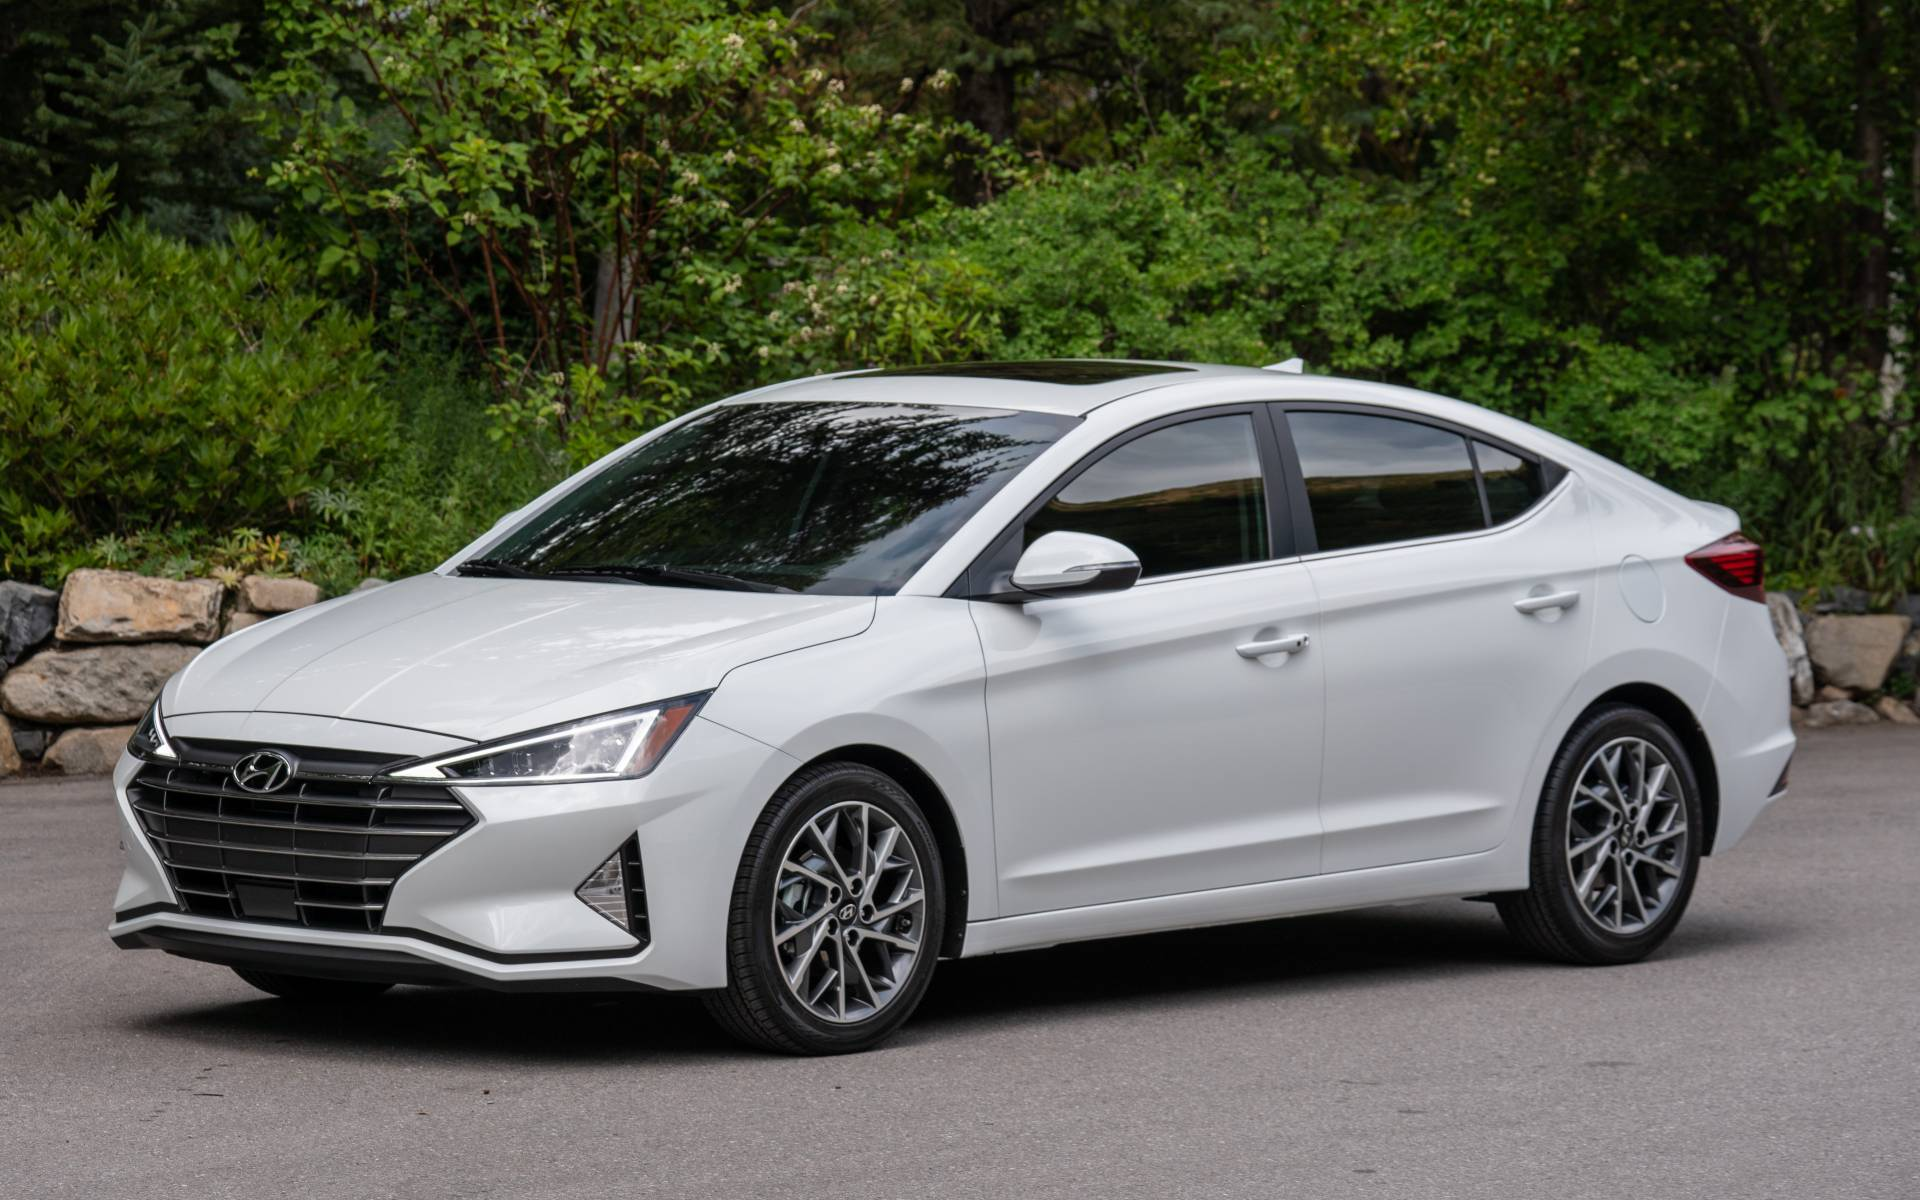 2020 hyundai elantra news reviews picture galleries and videos the car guide 2020 hyundai elantra news reviews